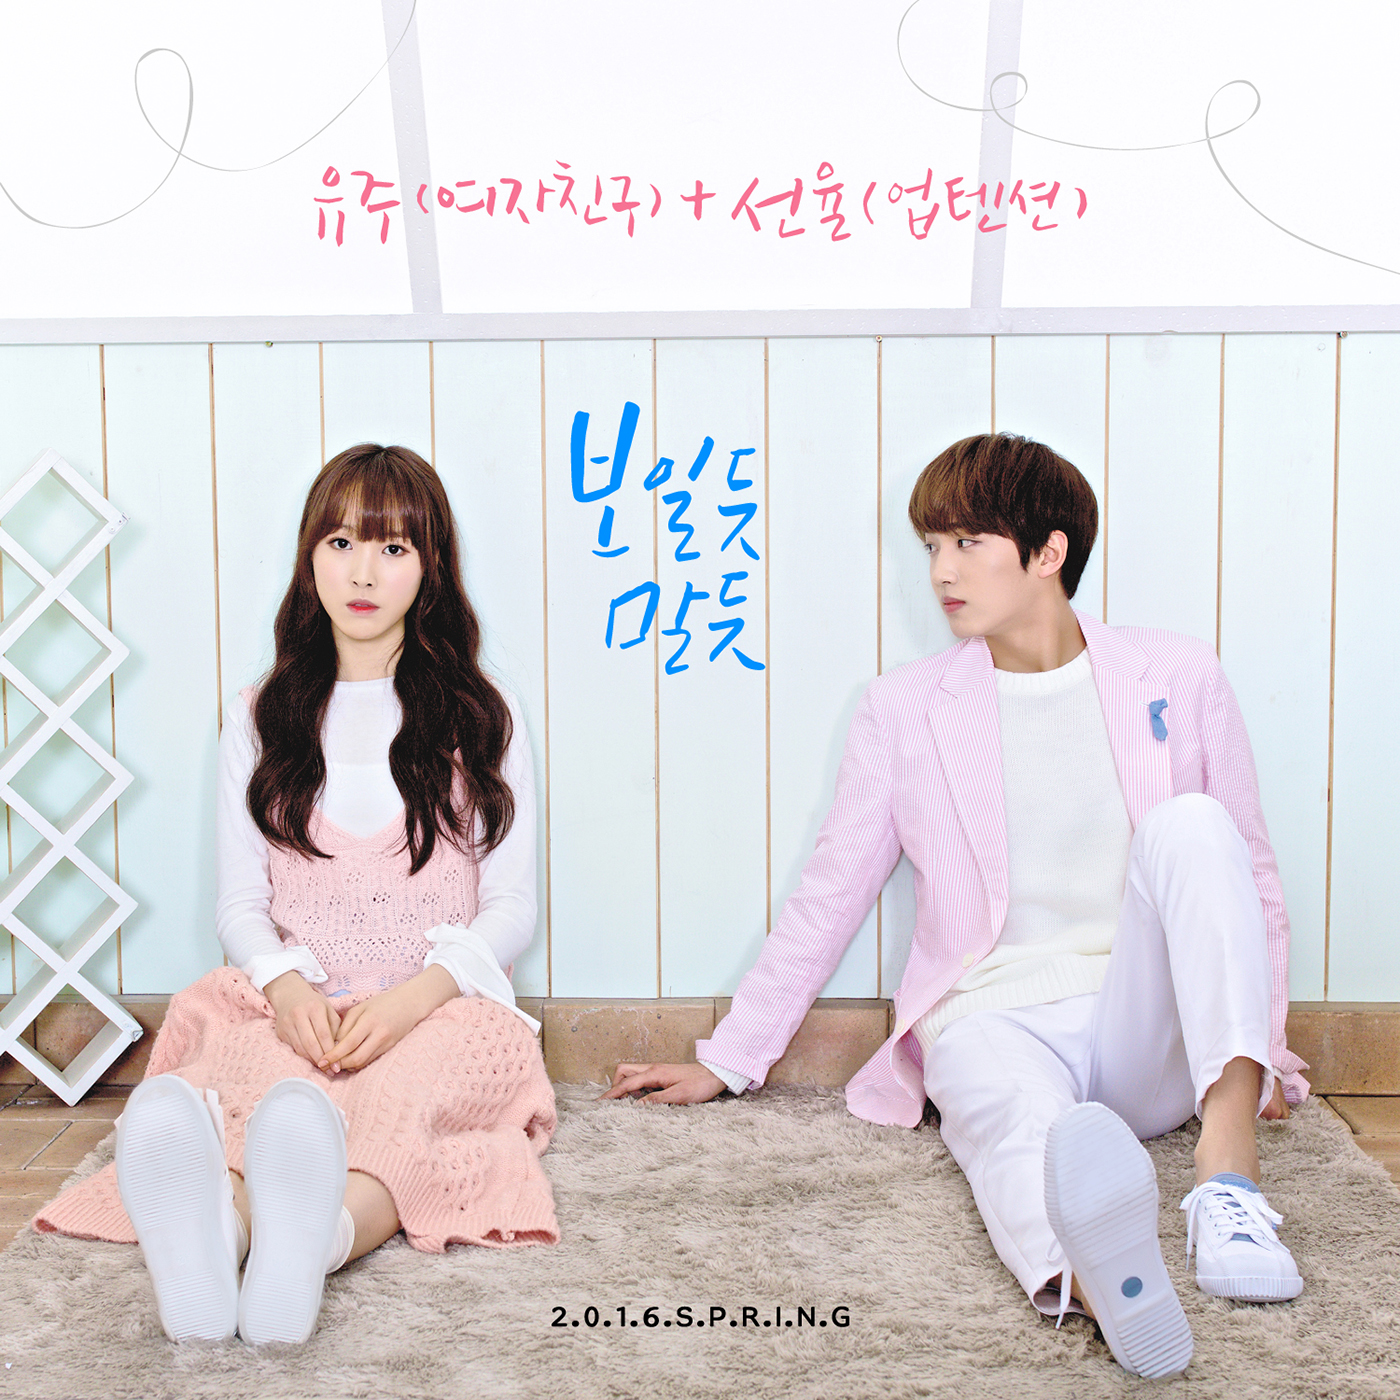 Yuju (GFRIEND) & Sunyoul (UP10TION) – Cherish (보일 듯 말 듯)